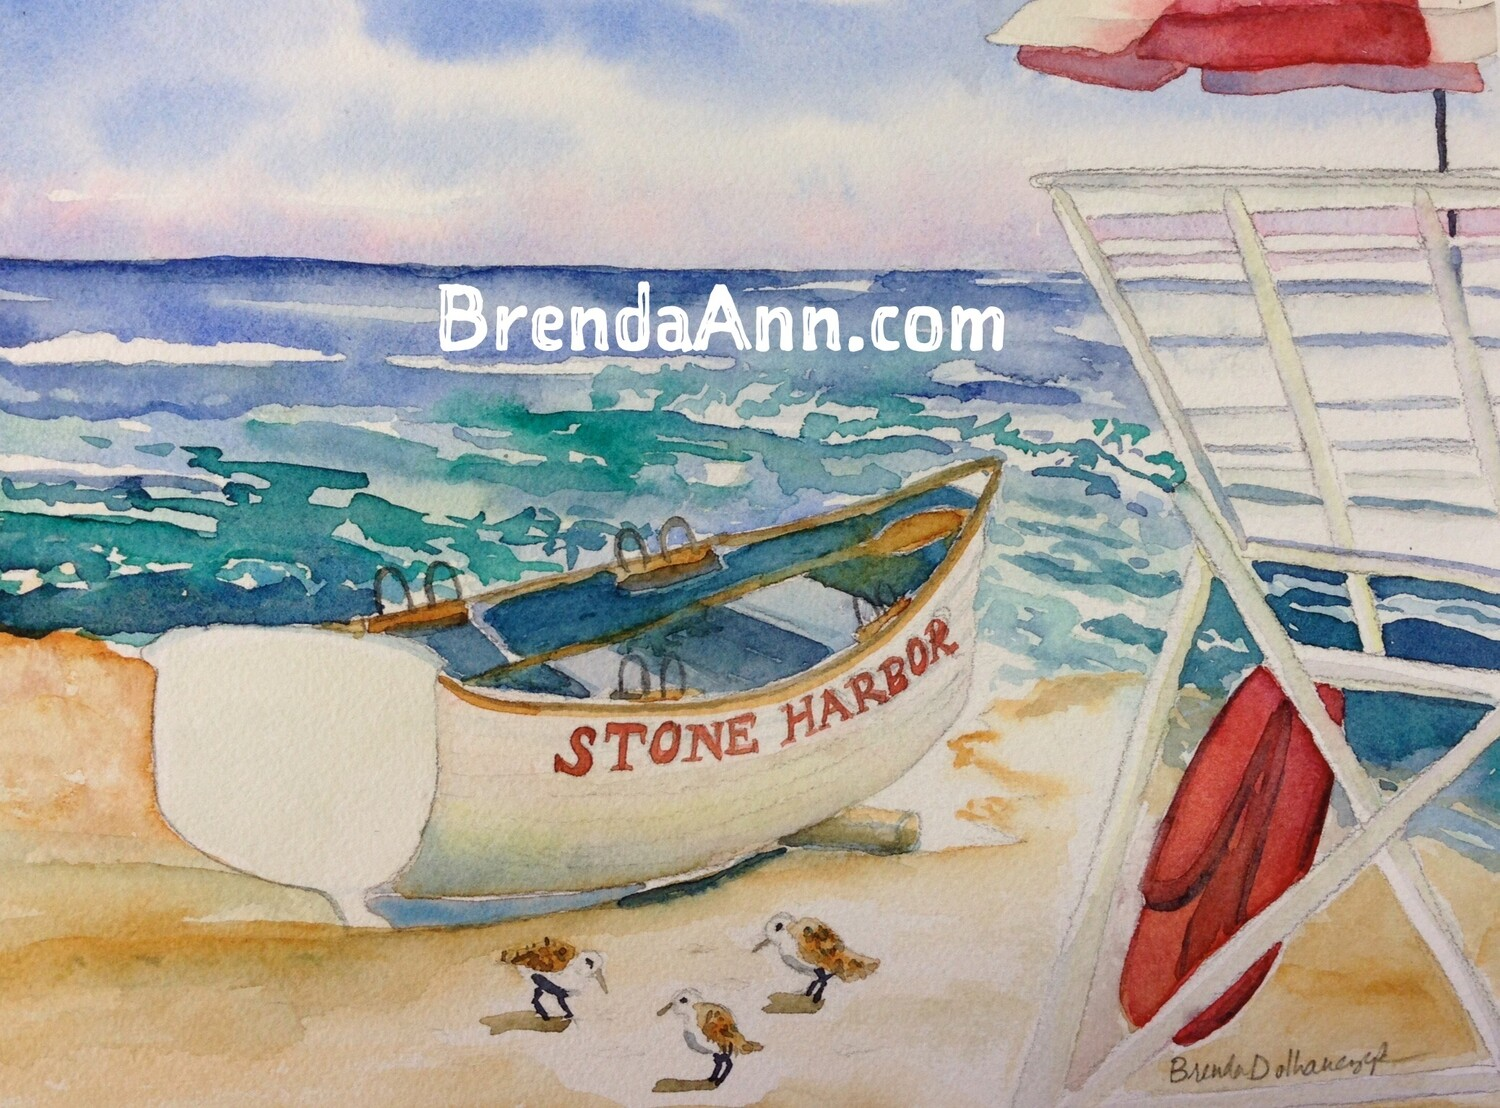 Lifeguard Boat on the Beach in Stone Harbor, NJ - Hand Signed Archival Watercolor Print